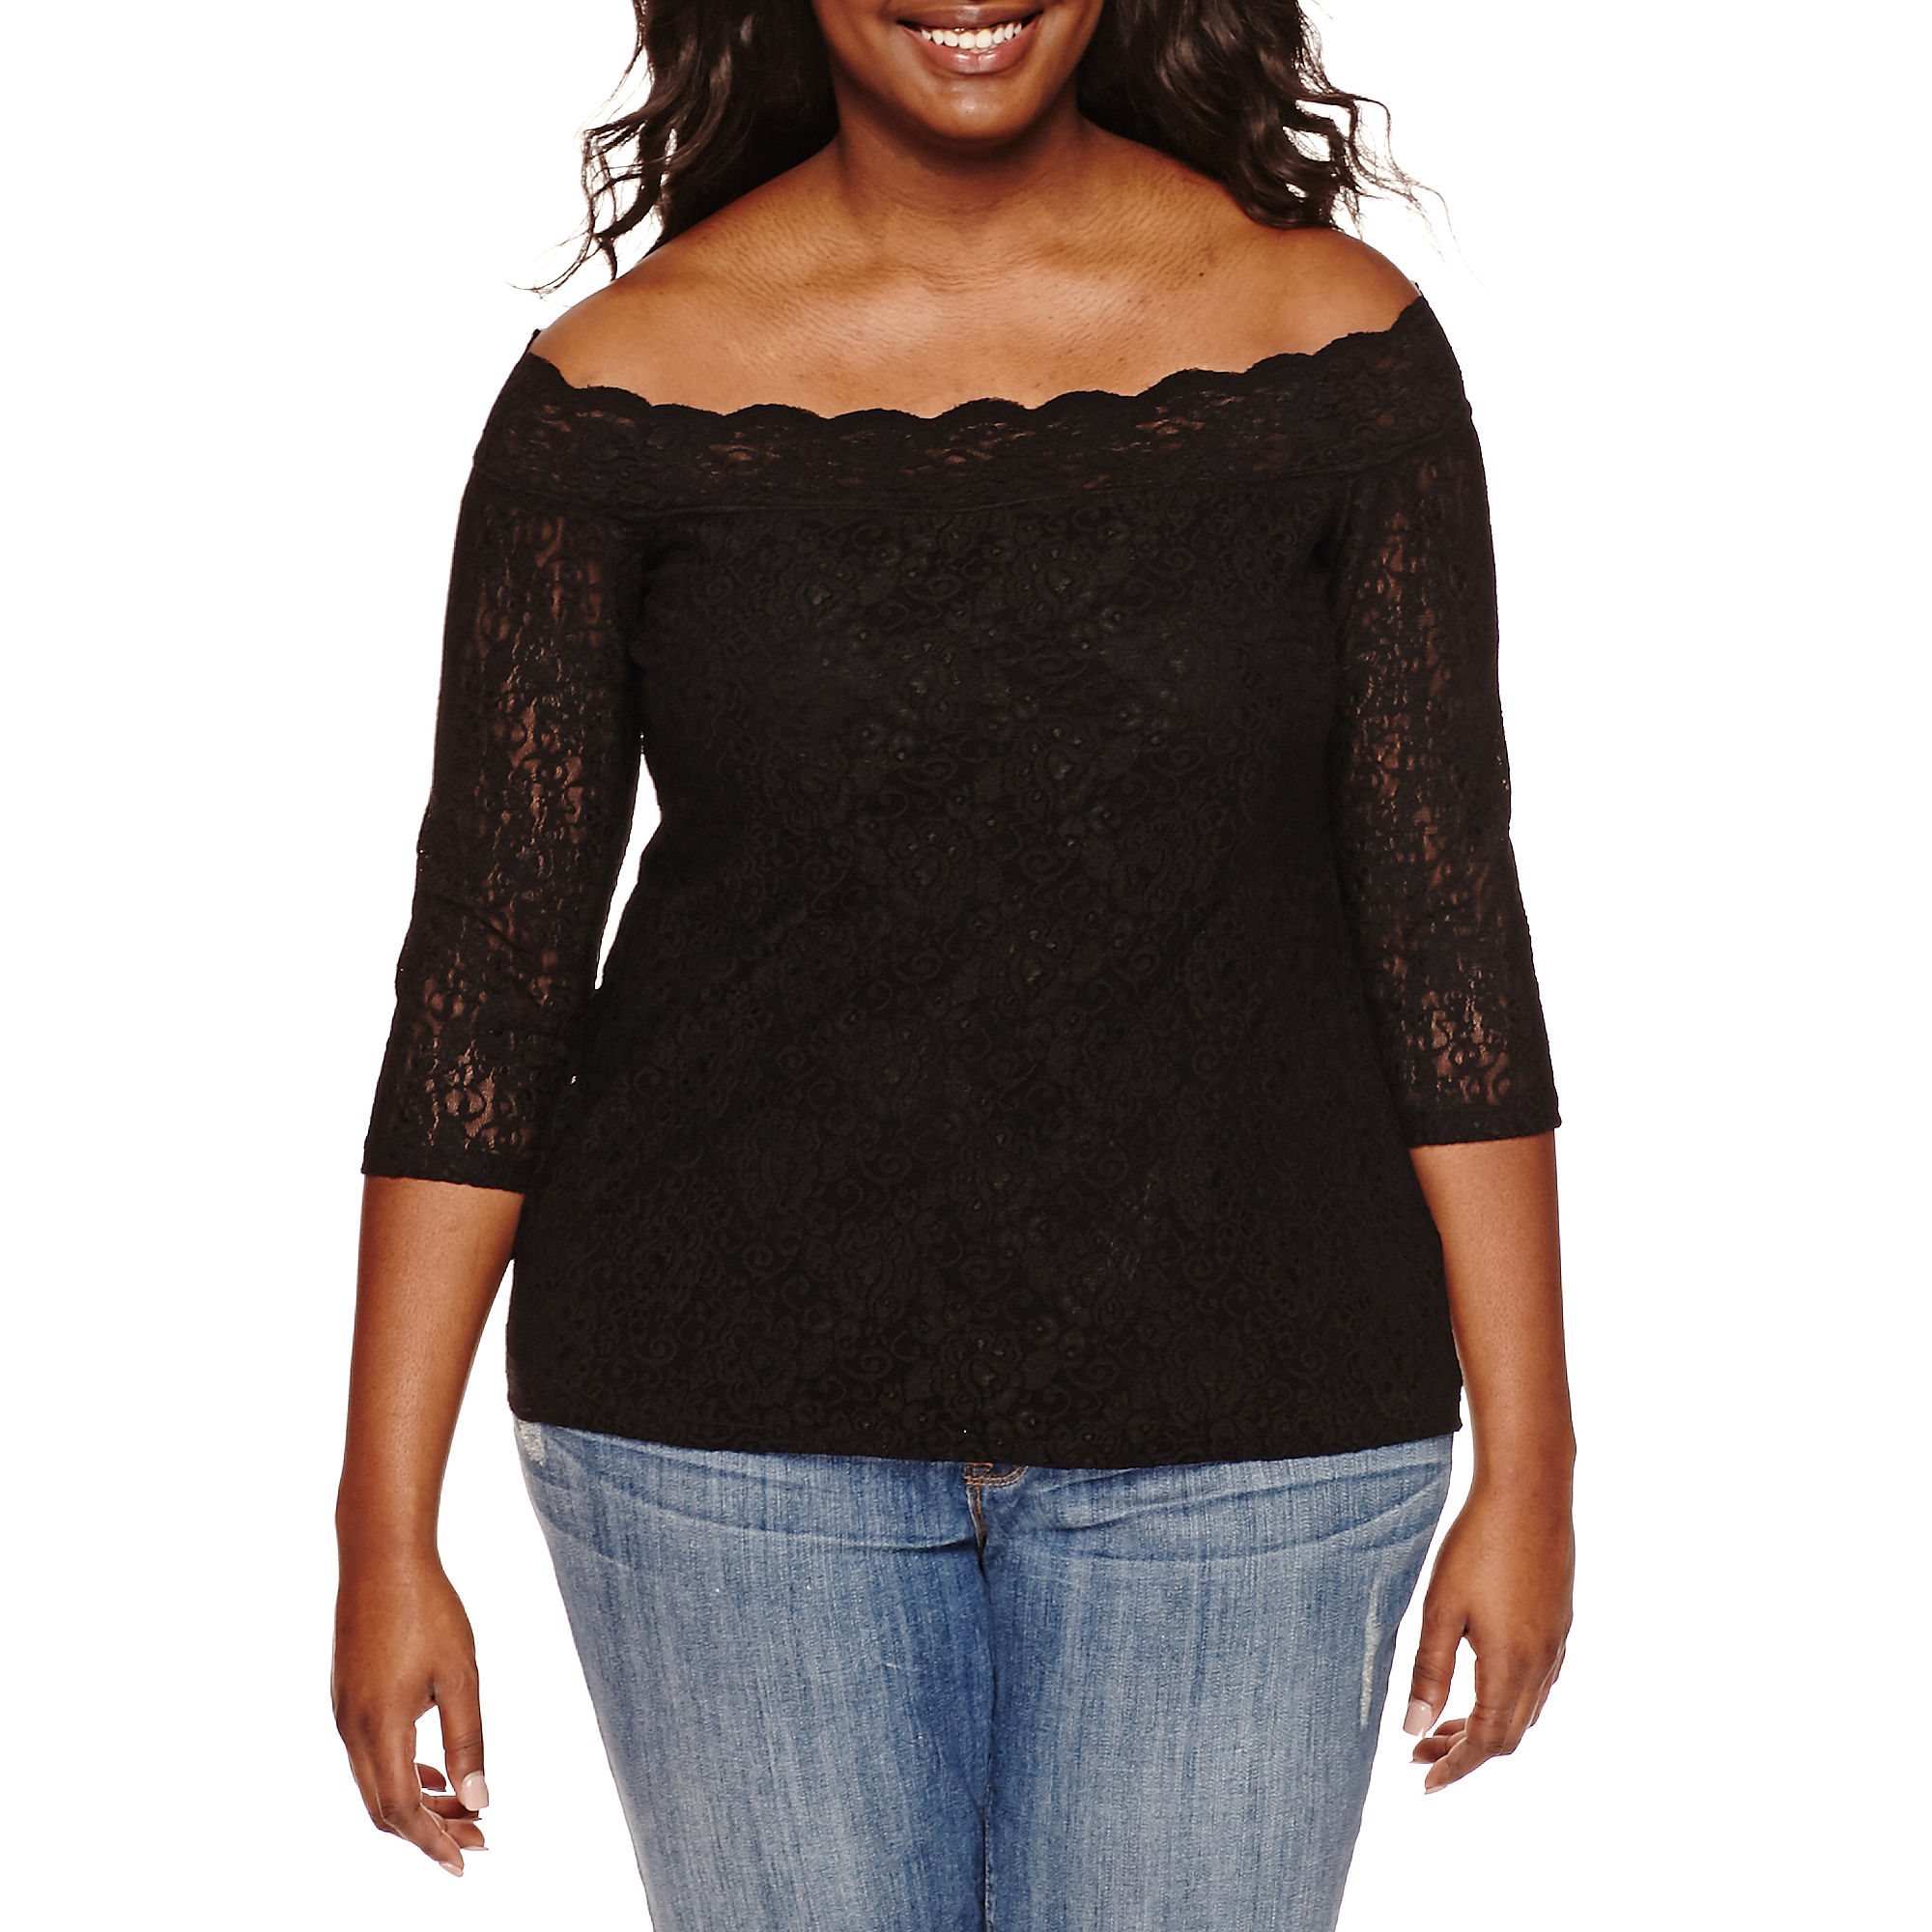 Decree Off-Shoulder Lace Bodycon Top - Juniors Plus plus size,  plus size fashion plus size appare